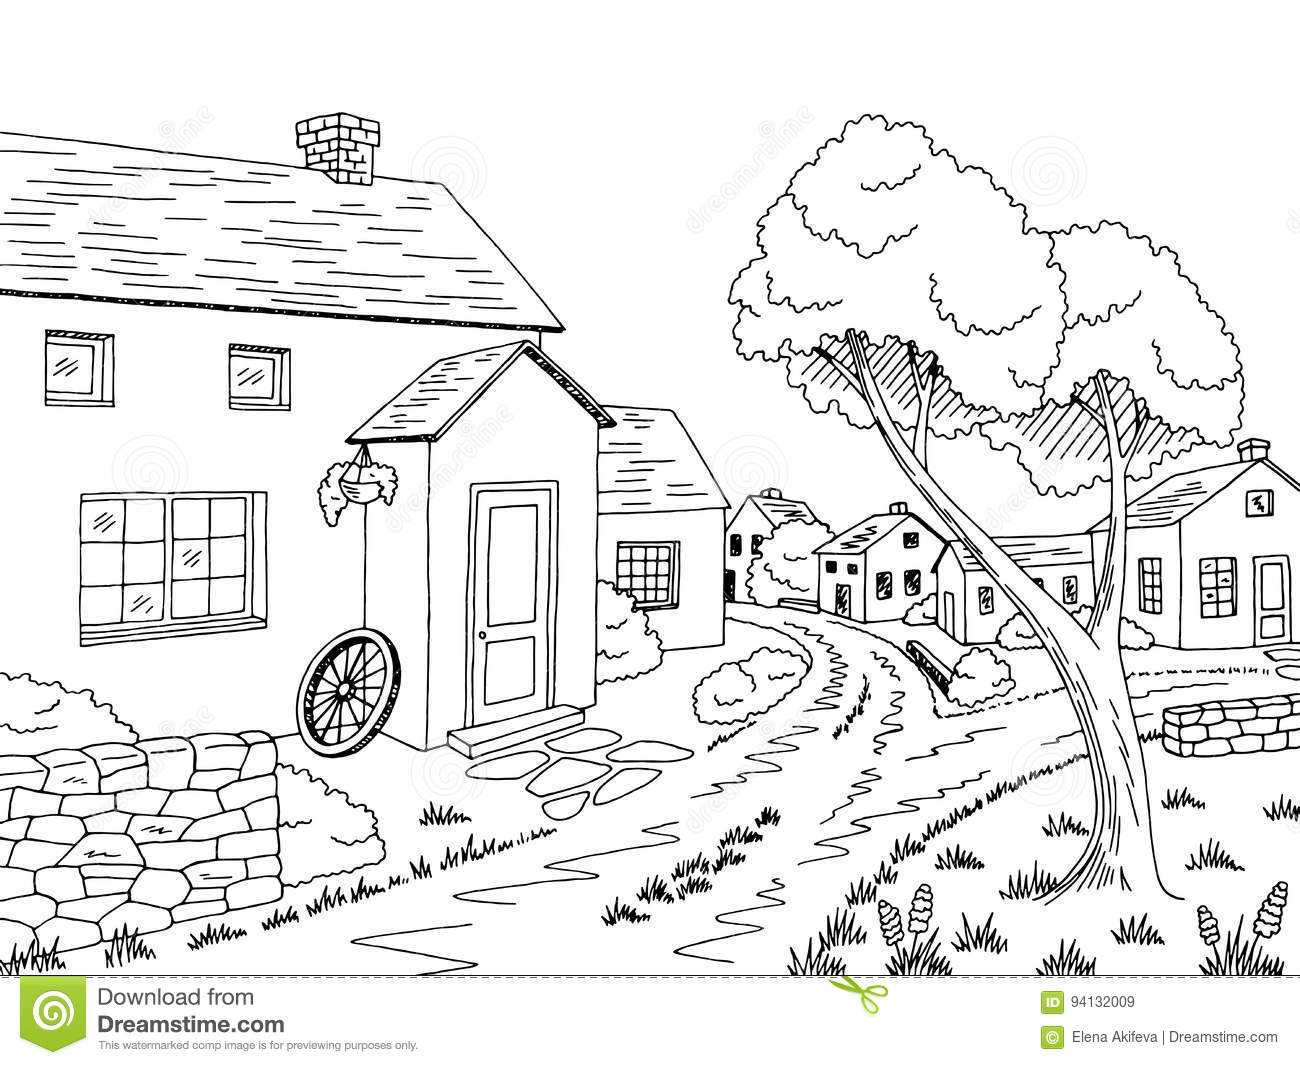 street scene coloring pages - photo#38